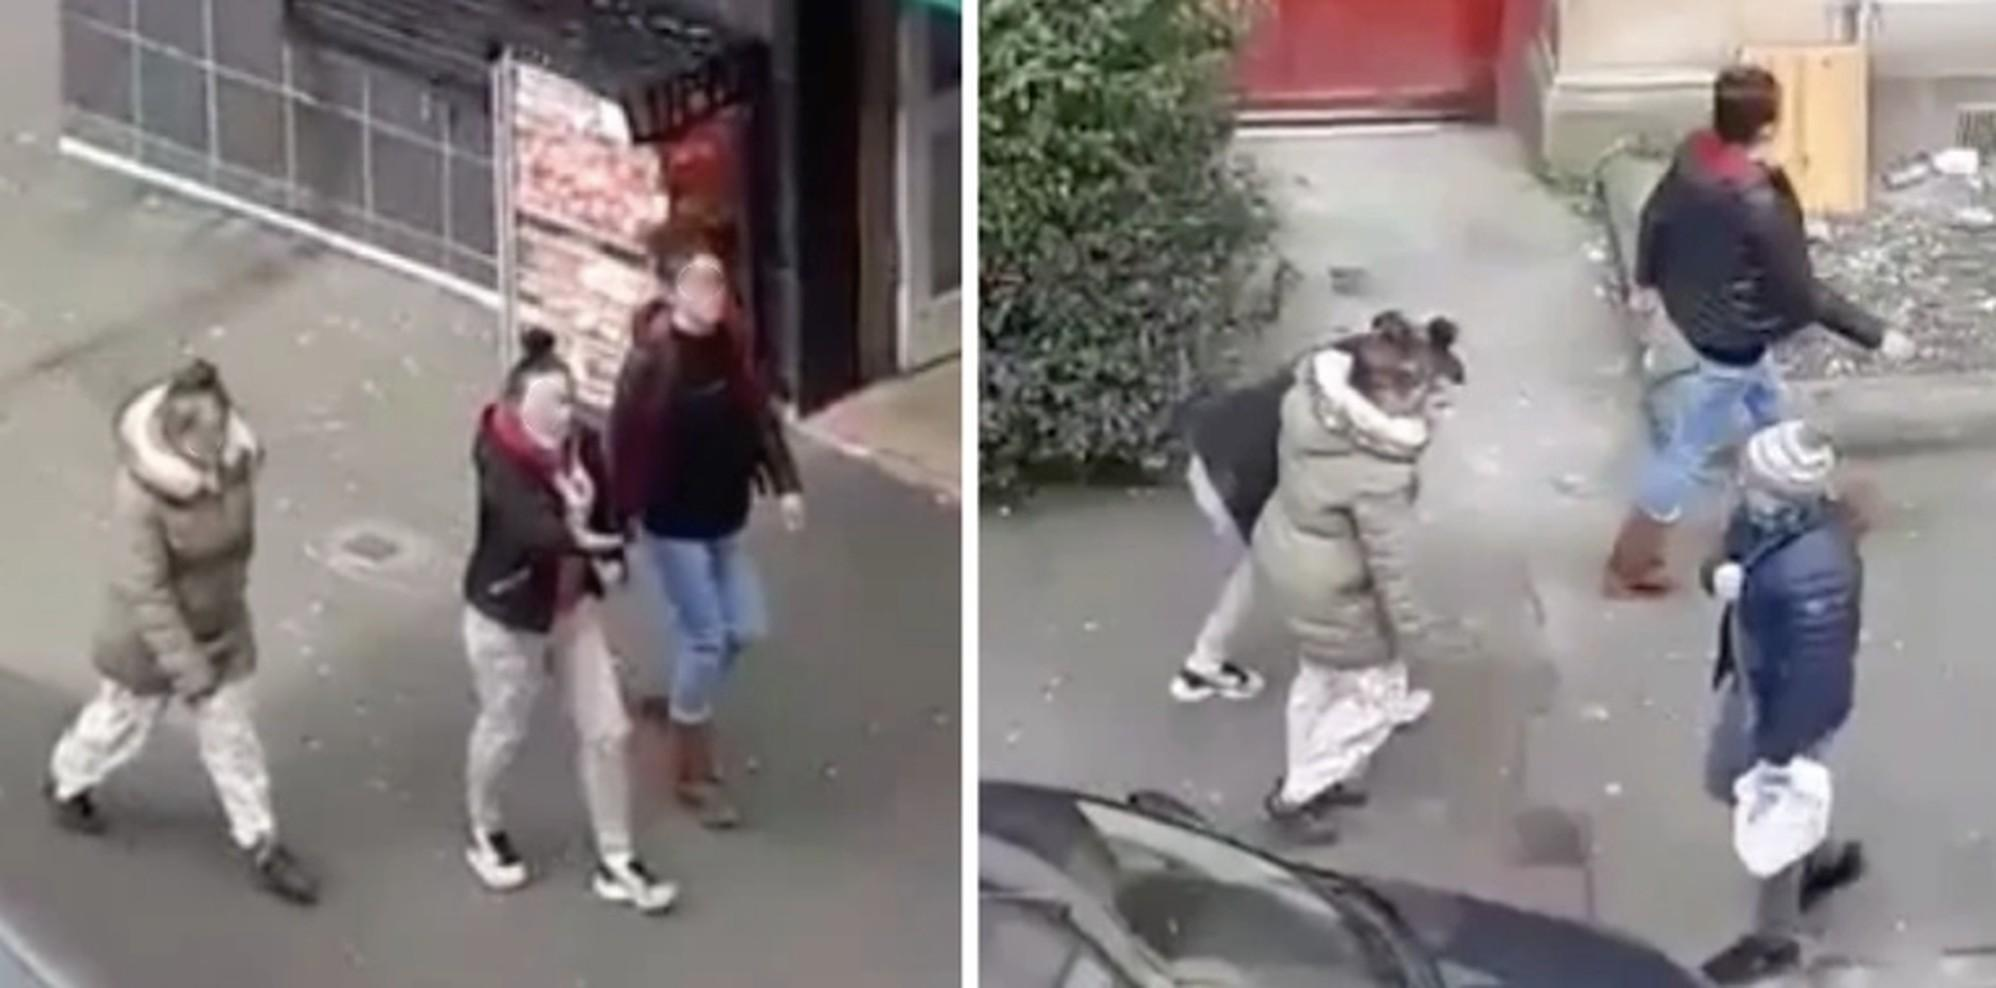 Shocking video captures group of women 'deliberately coughing' on passers by during coronvirus lockdown